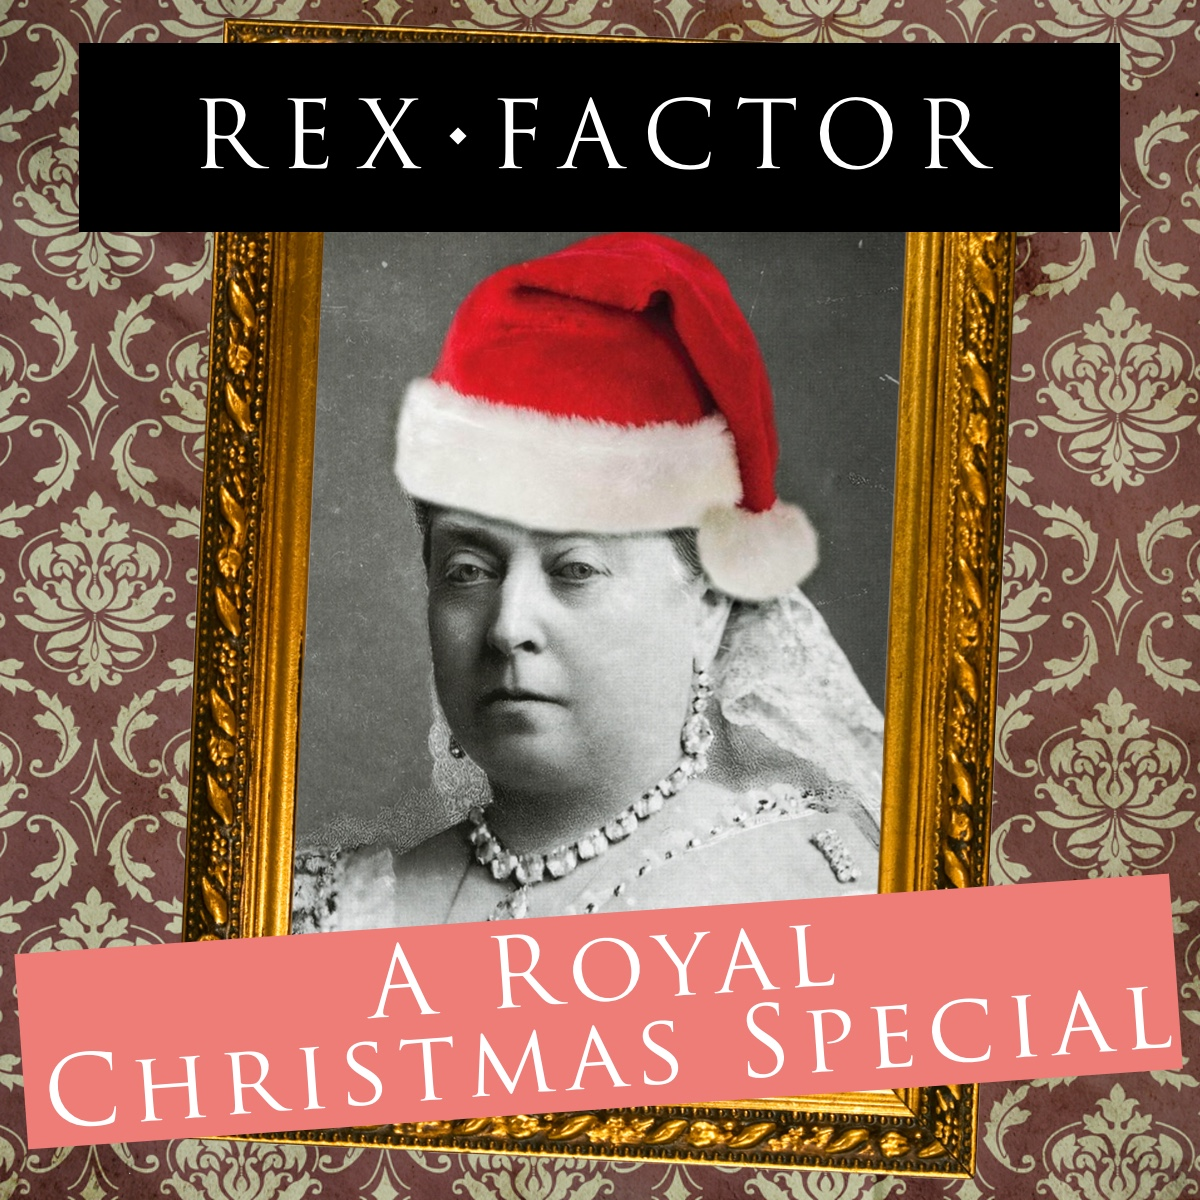 A Royal Christmas Special